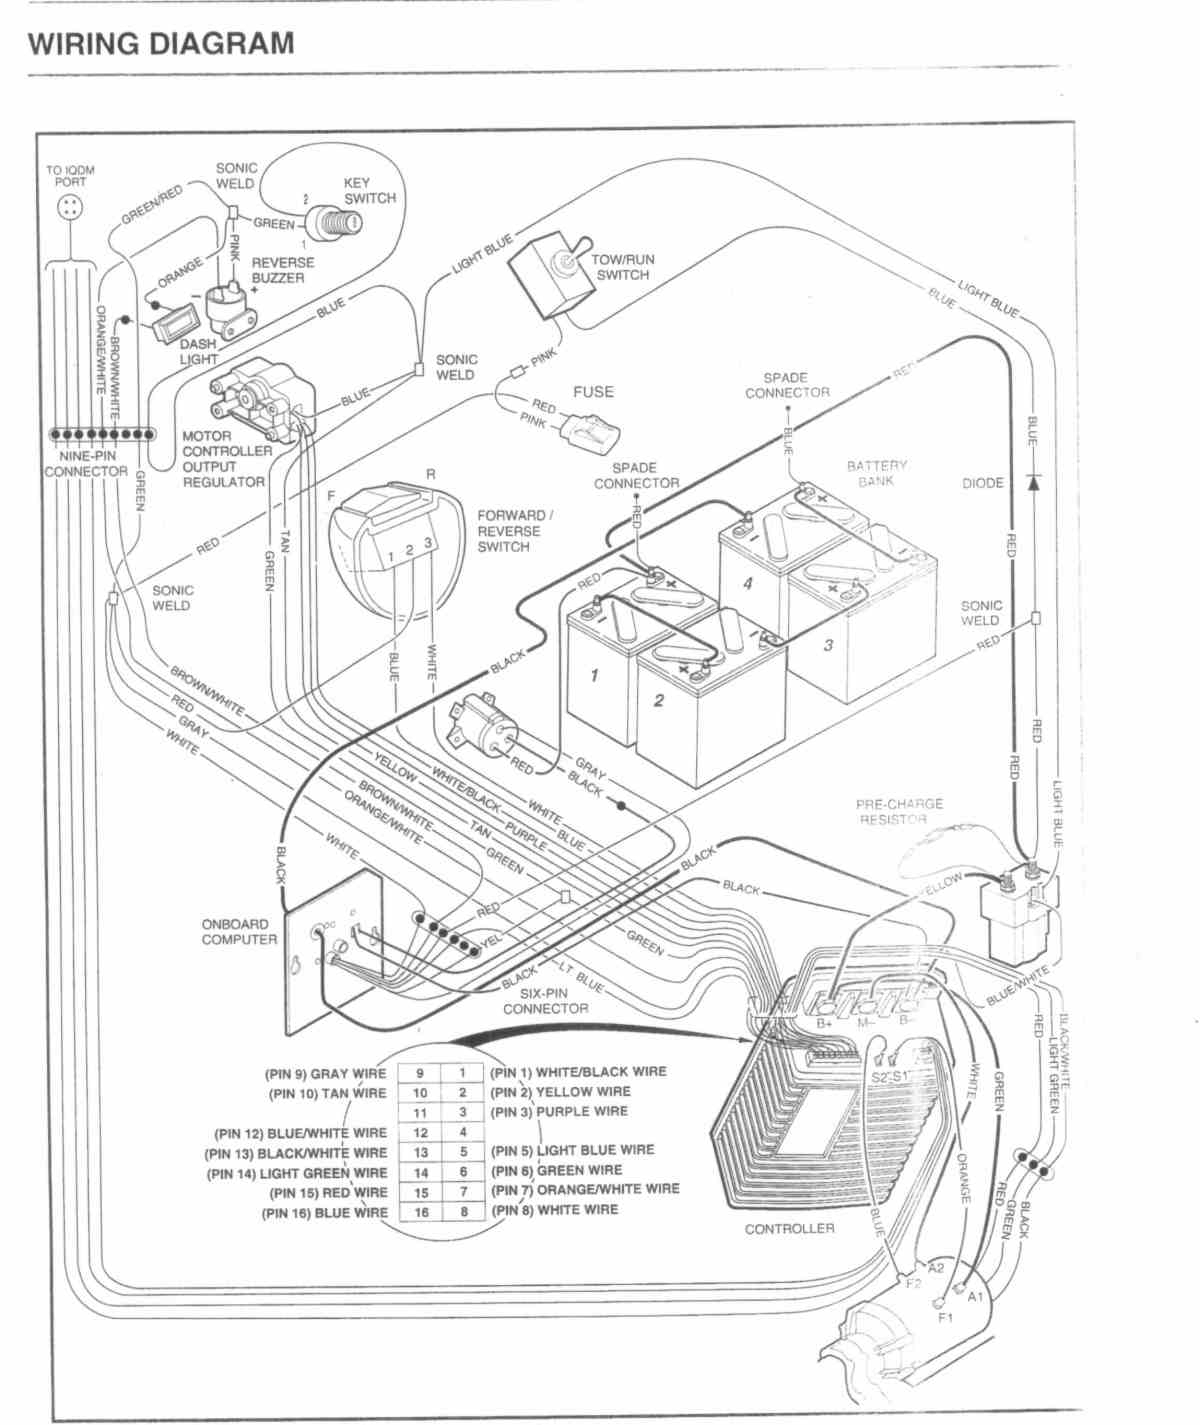 wiring diagram for club car golf cart home software ez go parts automotive